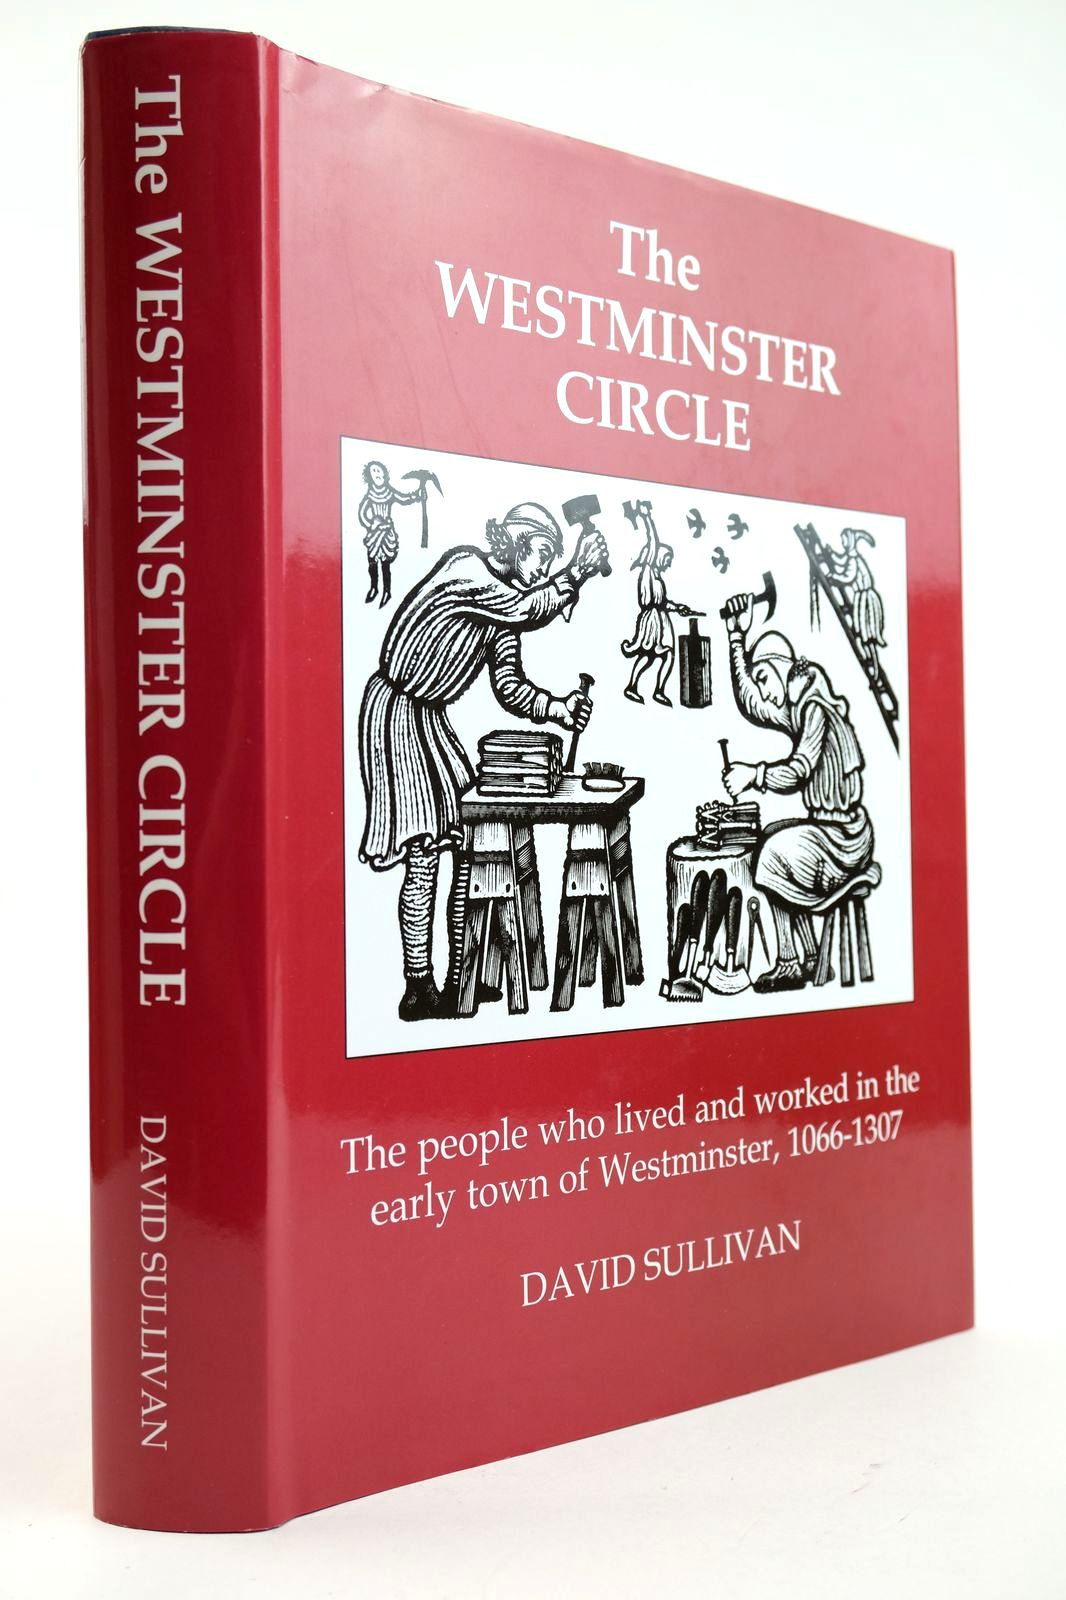 Photo of THE WESTMINSTER CIRCLE written by Sullivan, David published by Historical Publications Ltd. (STOCK CODE: 2132582)  for sale by Stella & Rose's Books